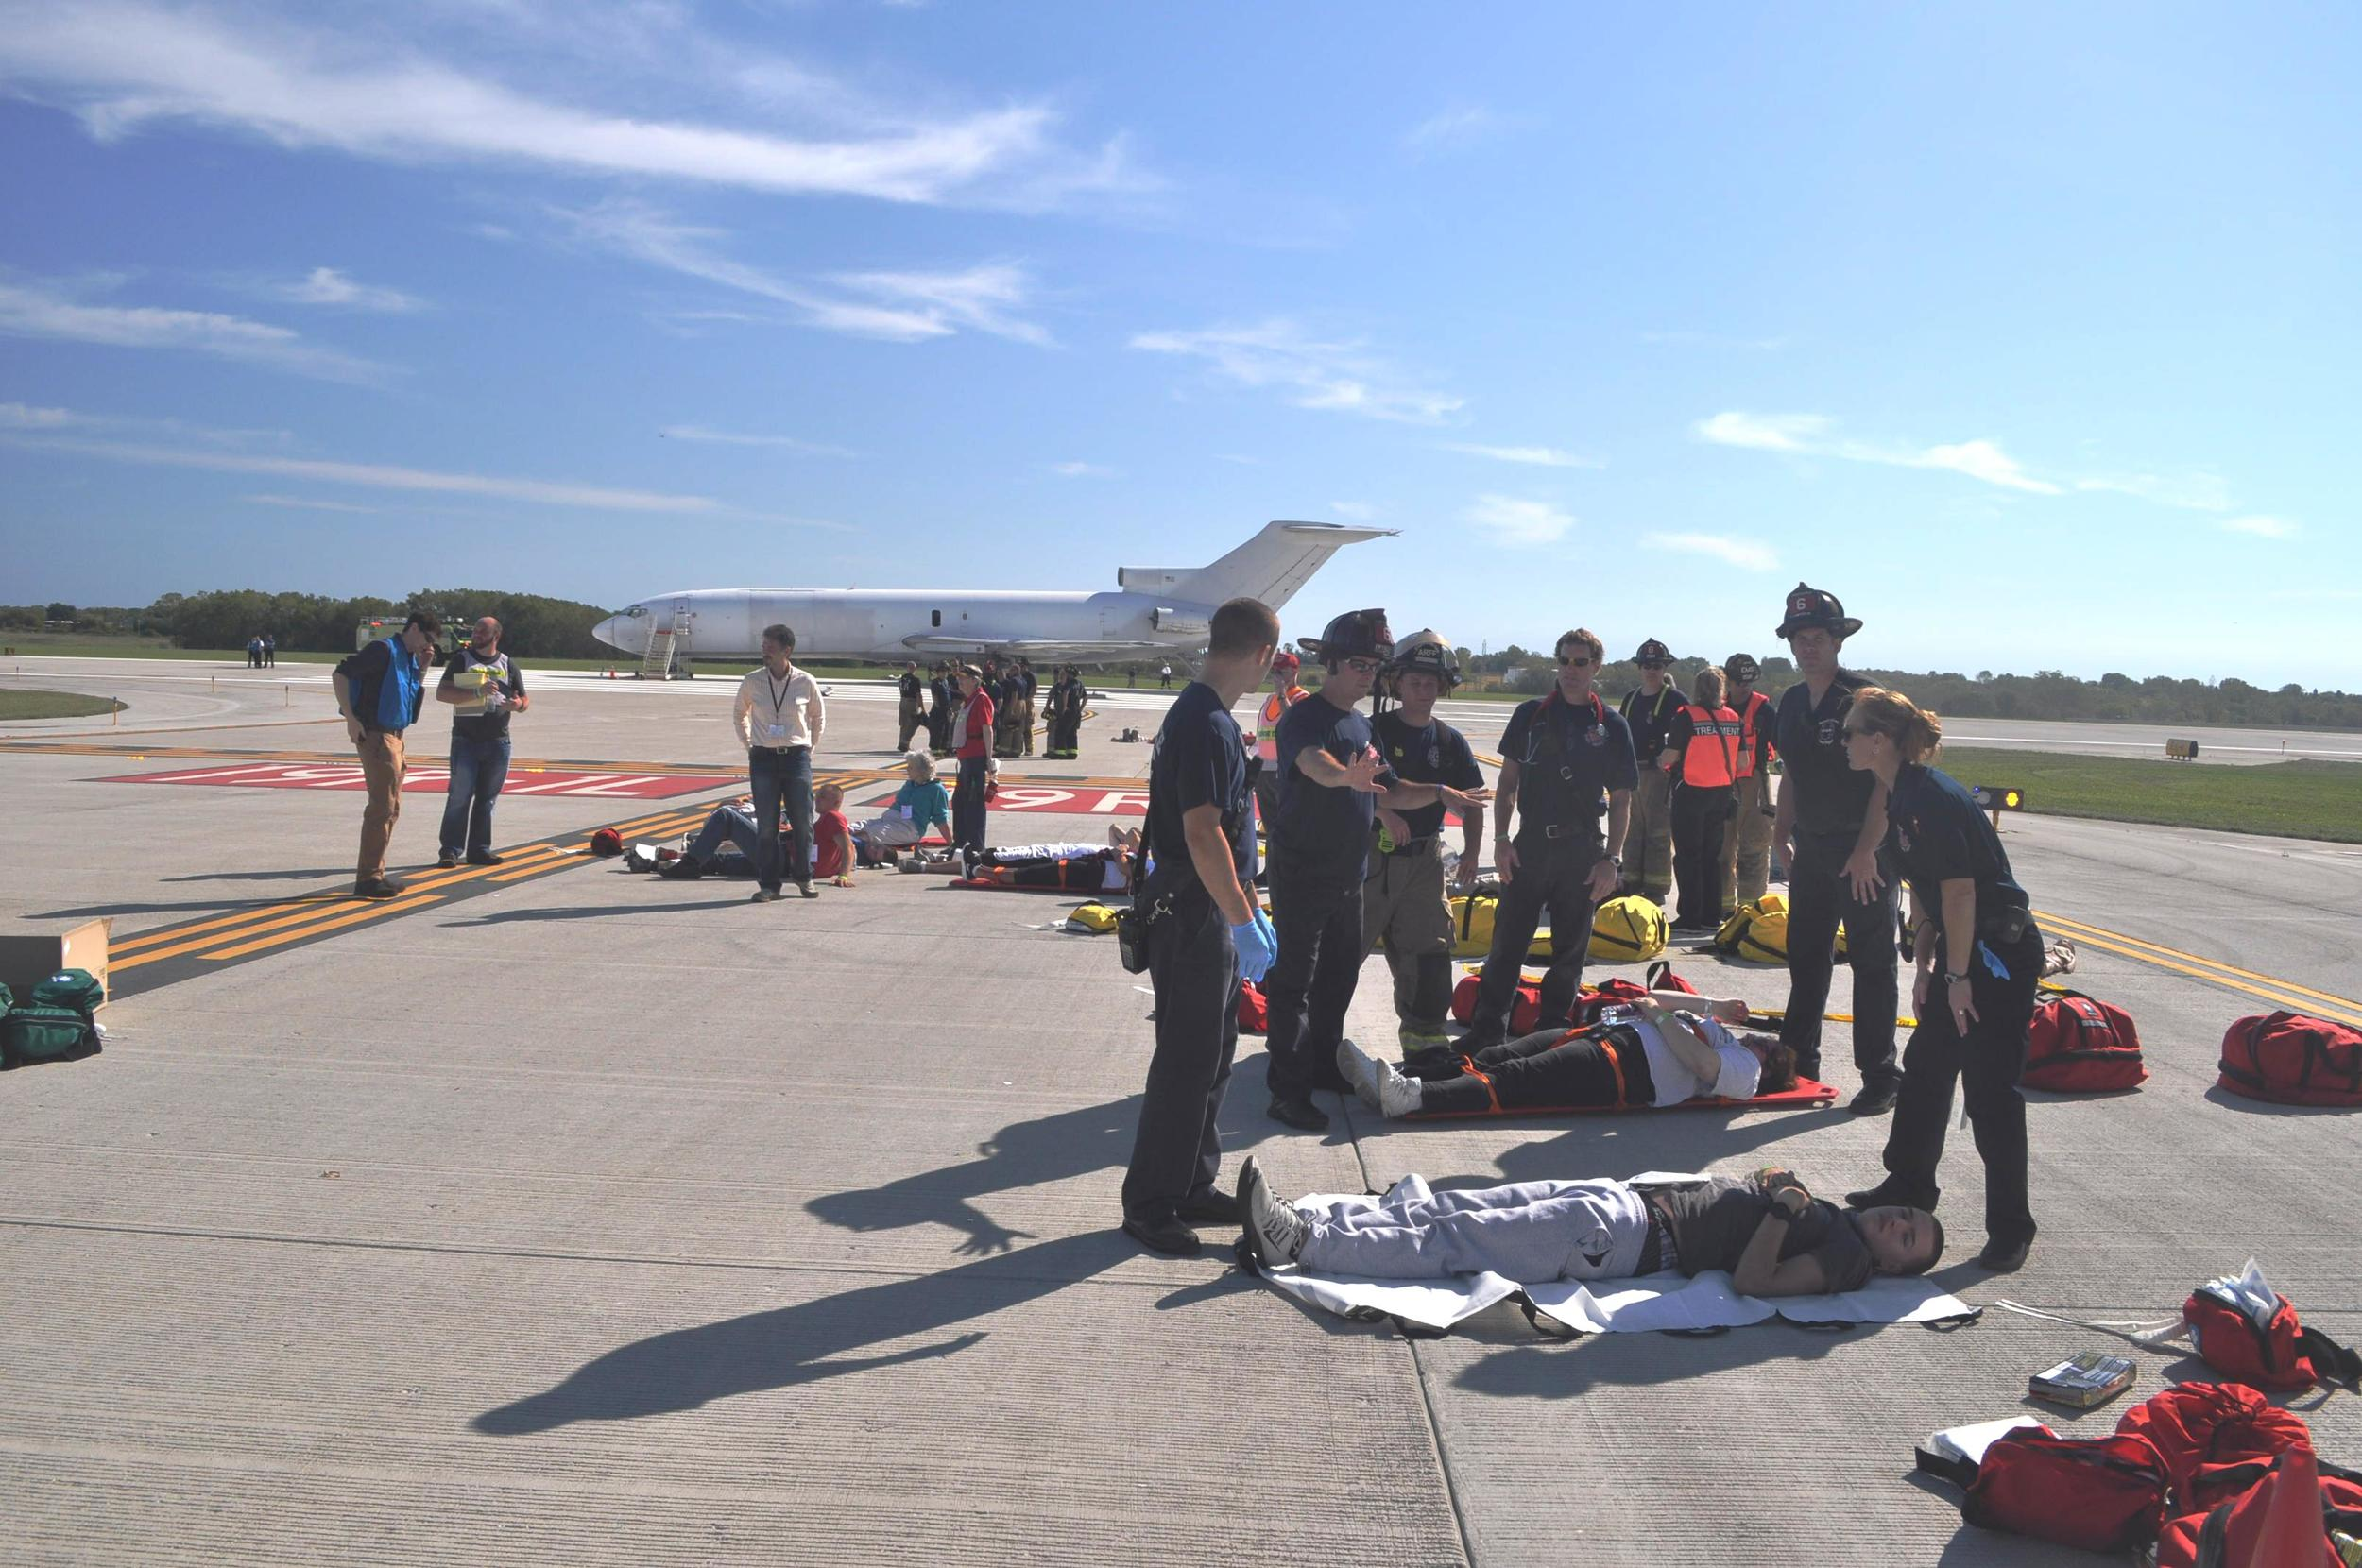 A full scale training exercise at an international airport.